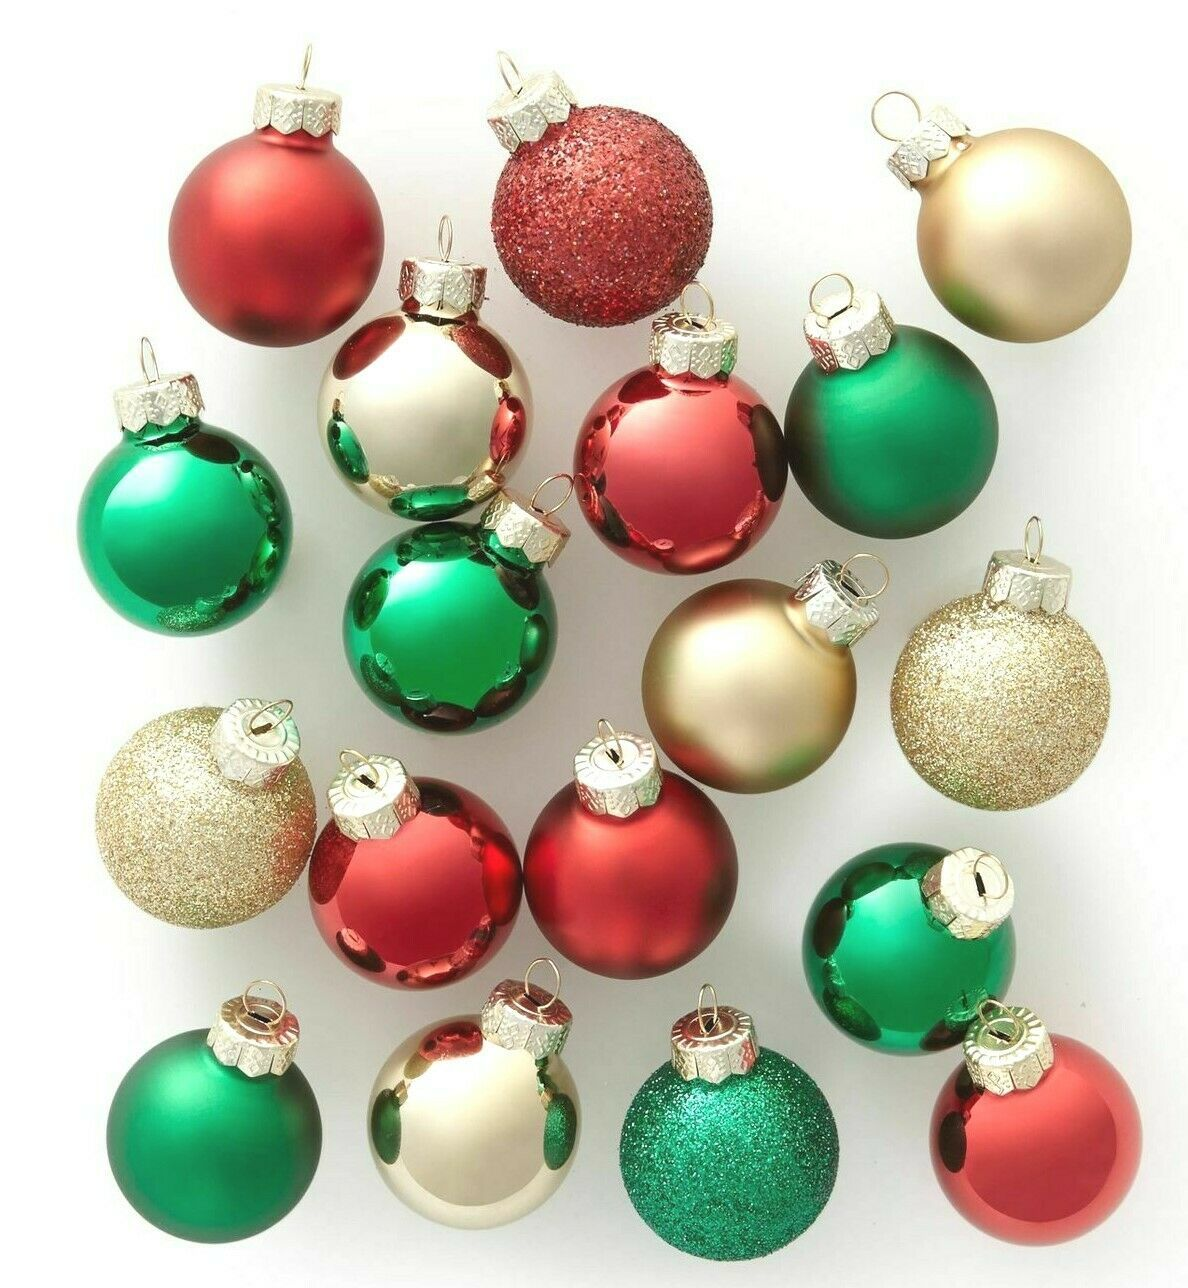 18ct Mini Glass Round Christmas Ornament Gold Green and Red - Wondershop